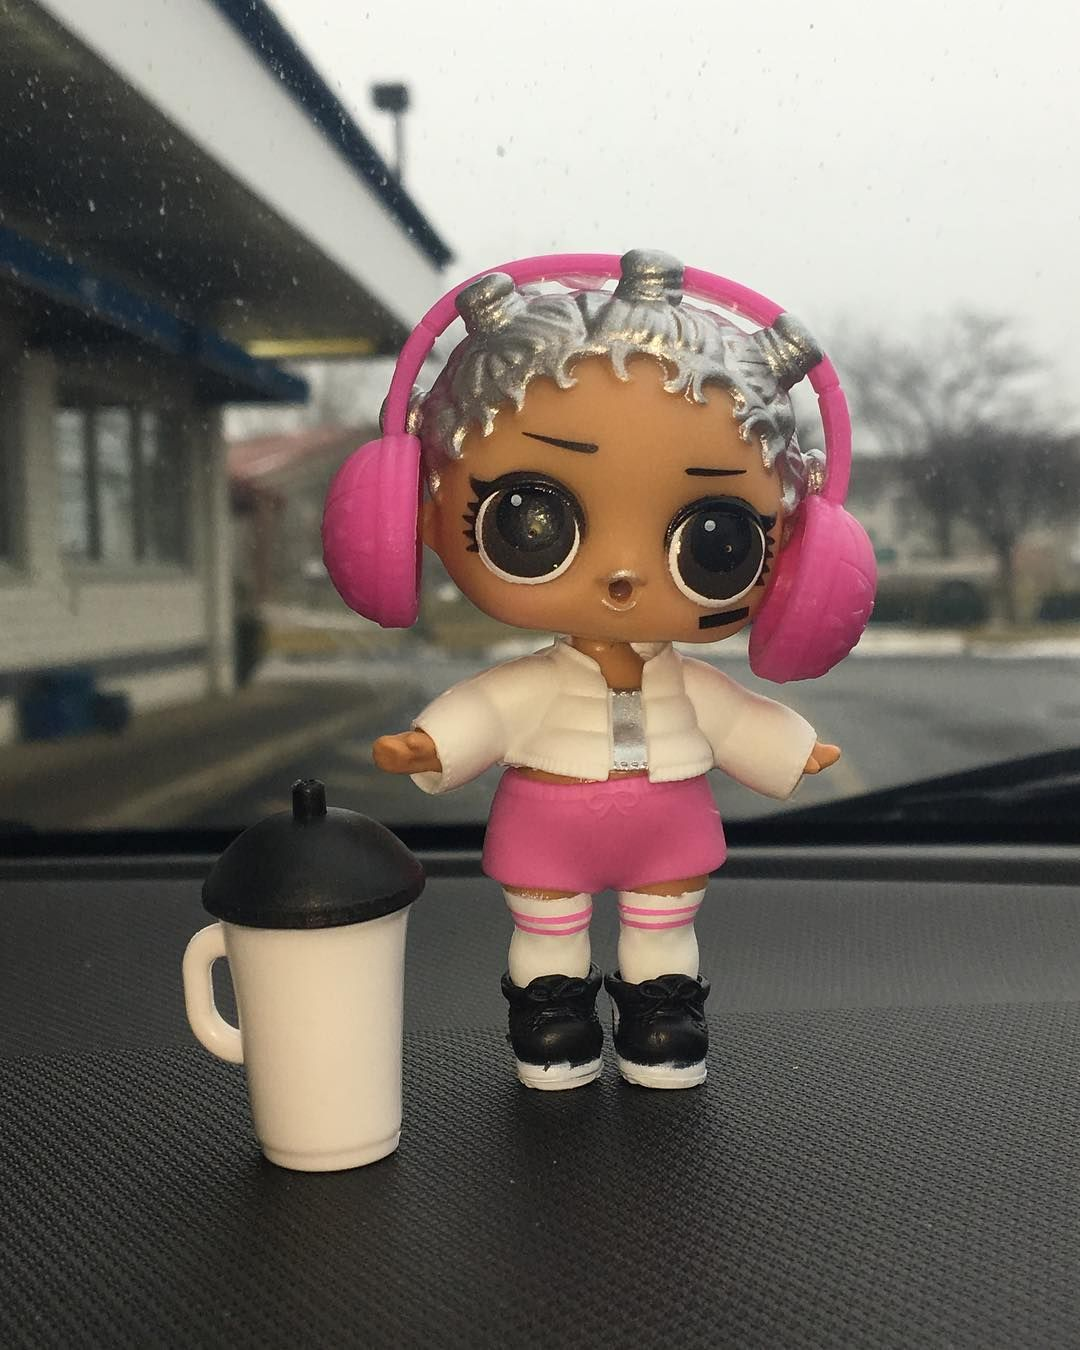 Beats From Lol Surprise Dolls Lolsurprisedolls Lolsurprise Dolls Lol Dolls Dolls Lol